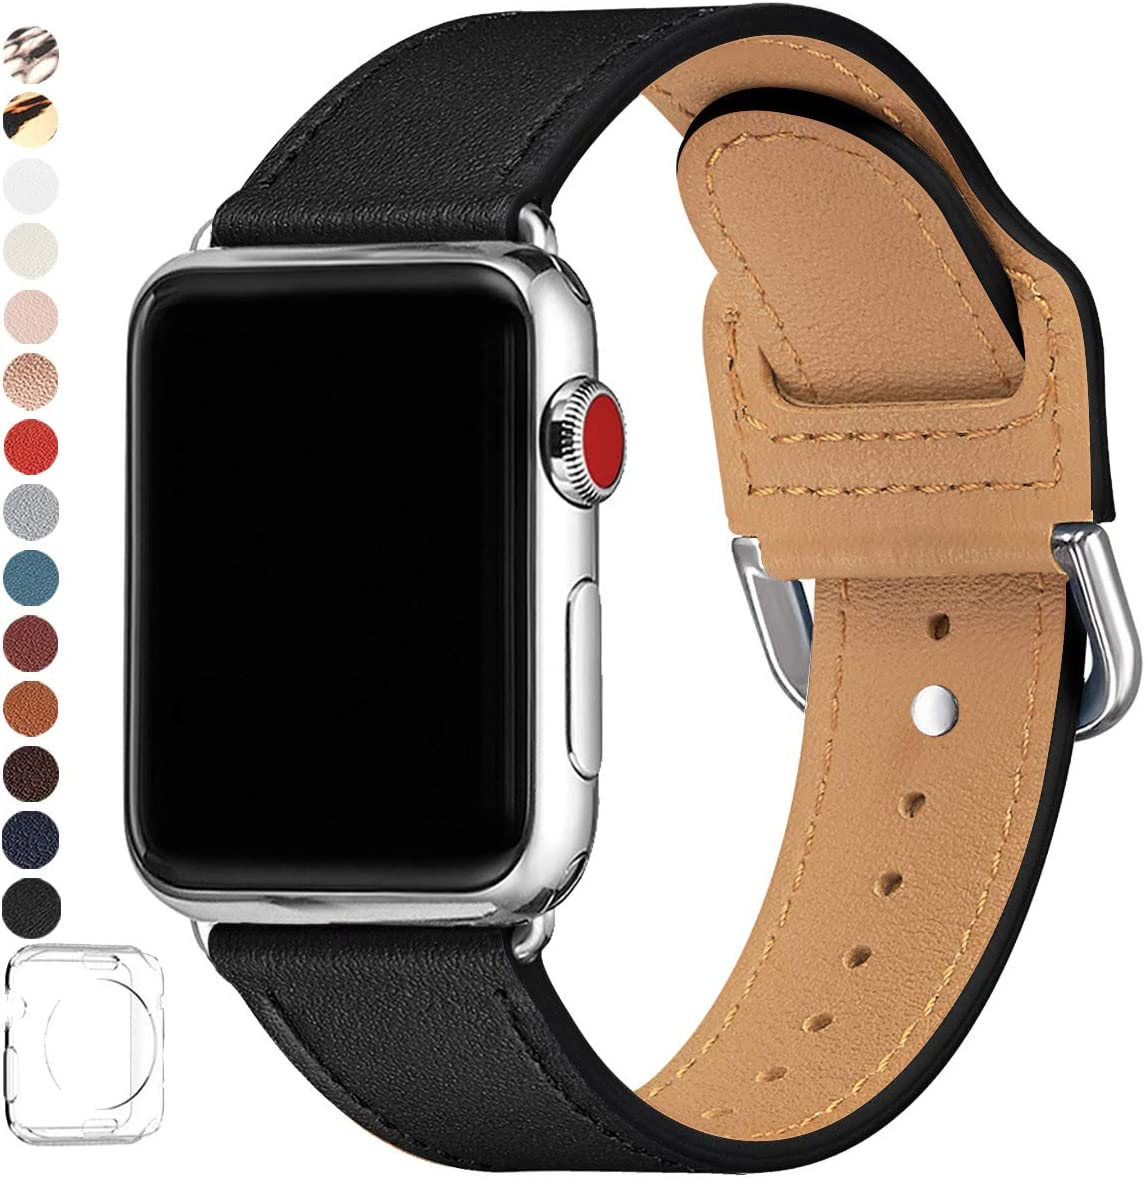 POWER PRIMACY Bands Compatible with Apple Watch Band 38mm 40mm 42mm 44mm, Top Grain Leather Smart Watch Strap Compatible for Men Women iWatch Series 6 5 4 3 2 1,SE (Black/Silver, 42mm/44mm)